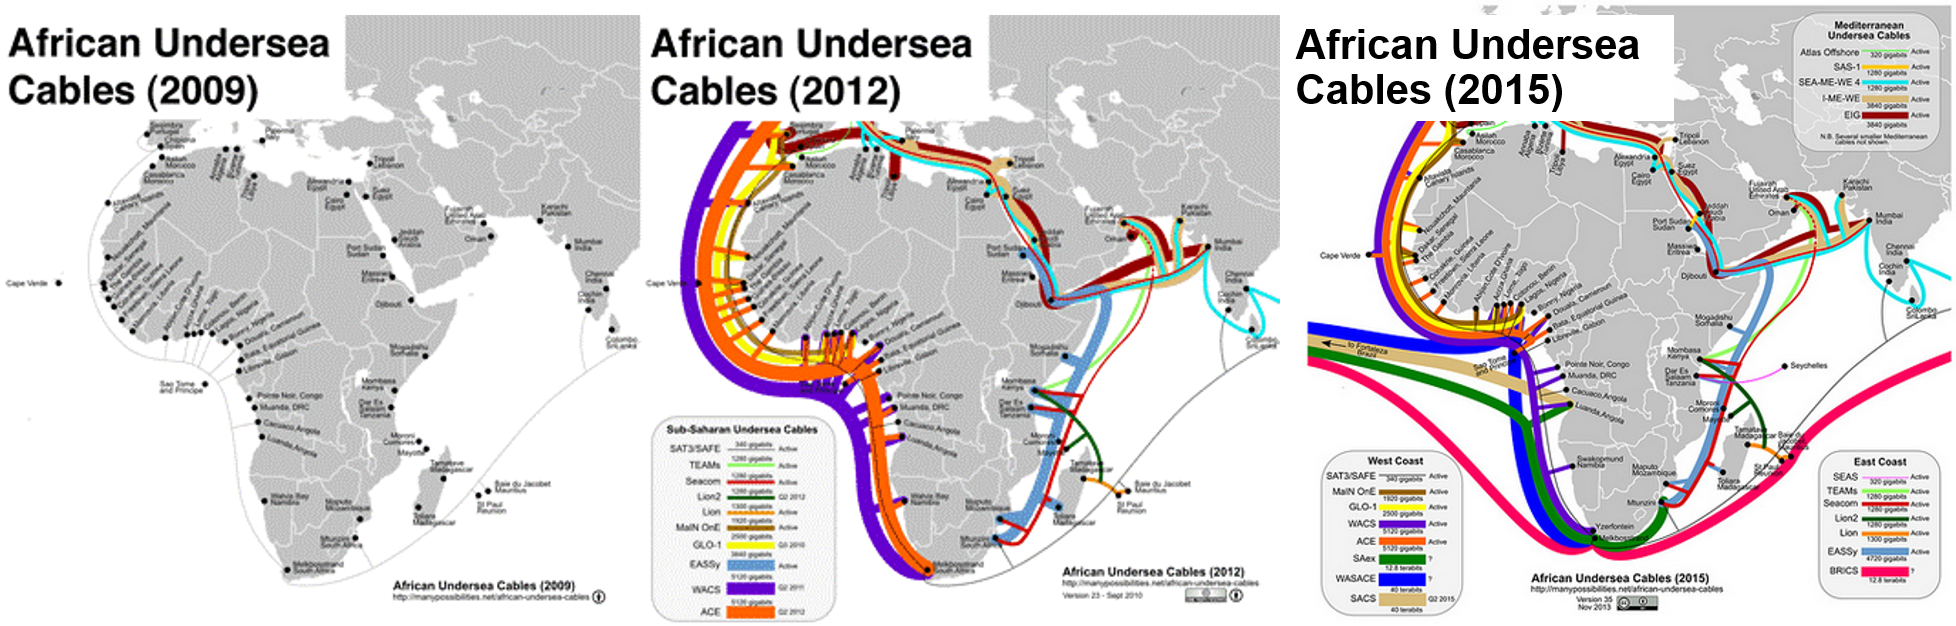 African Underseas Cables (2009-2015)